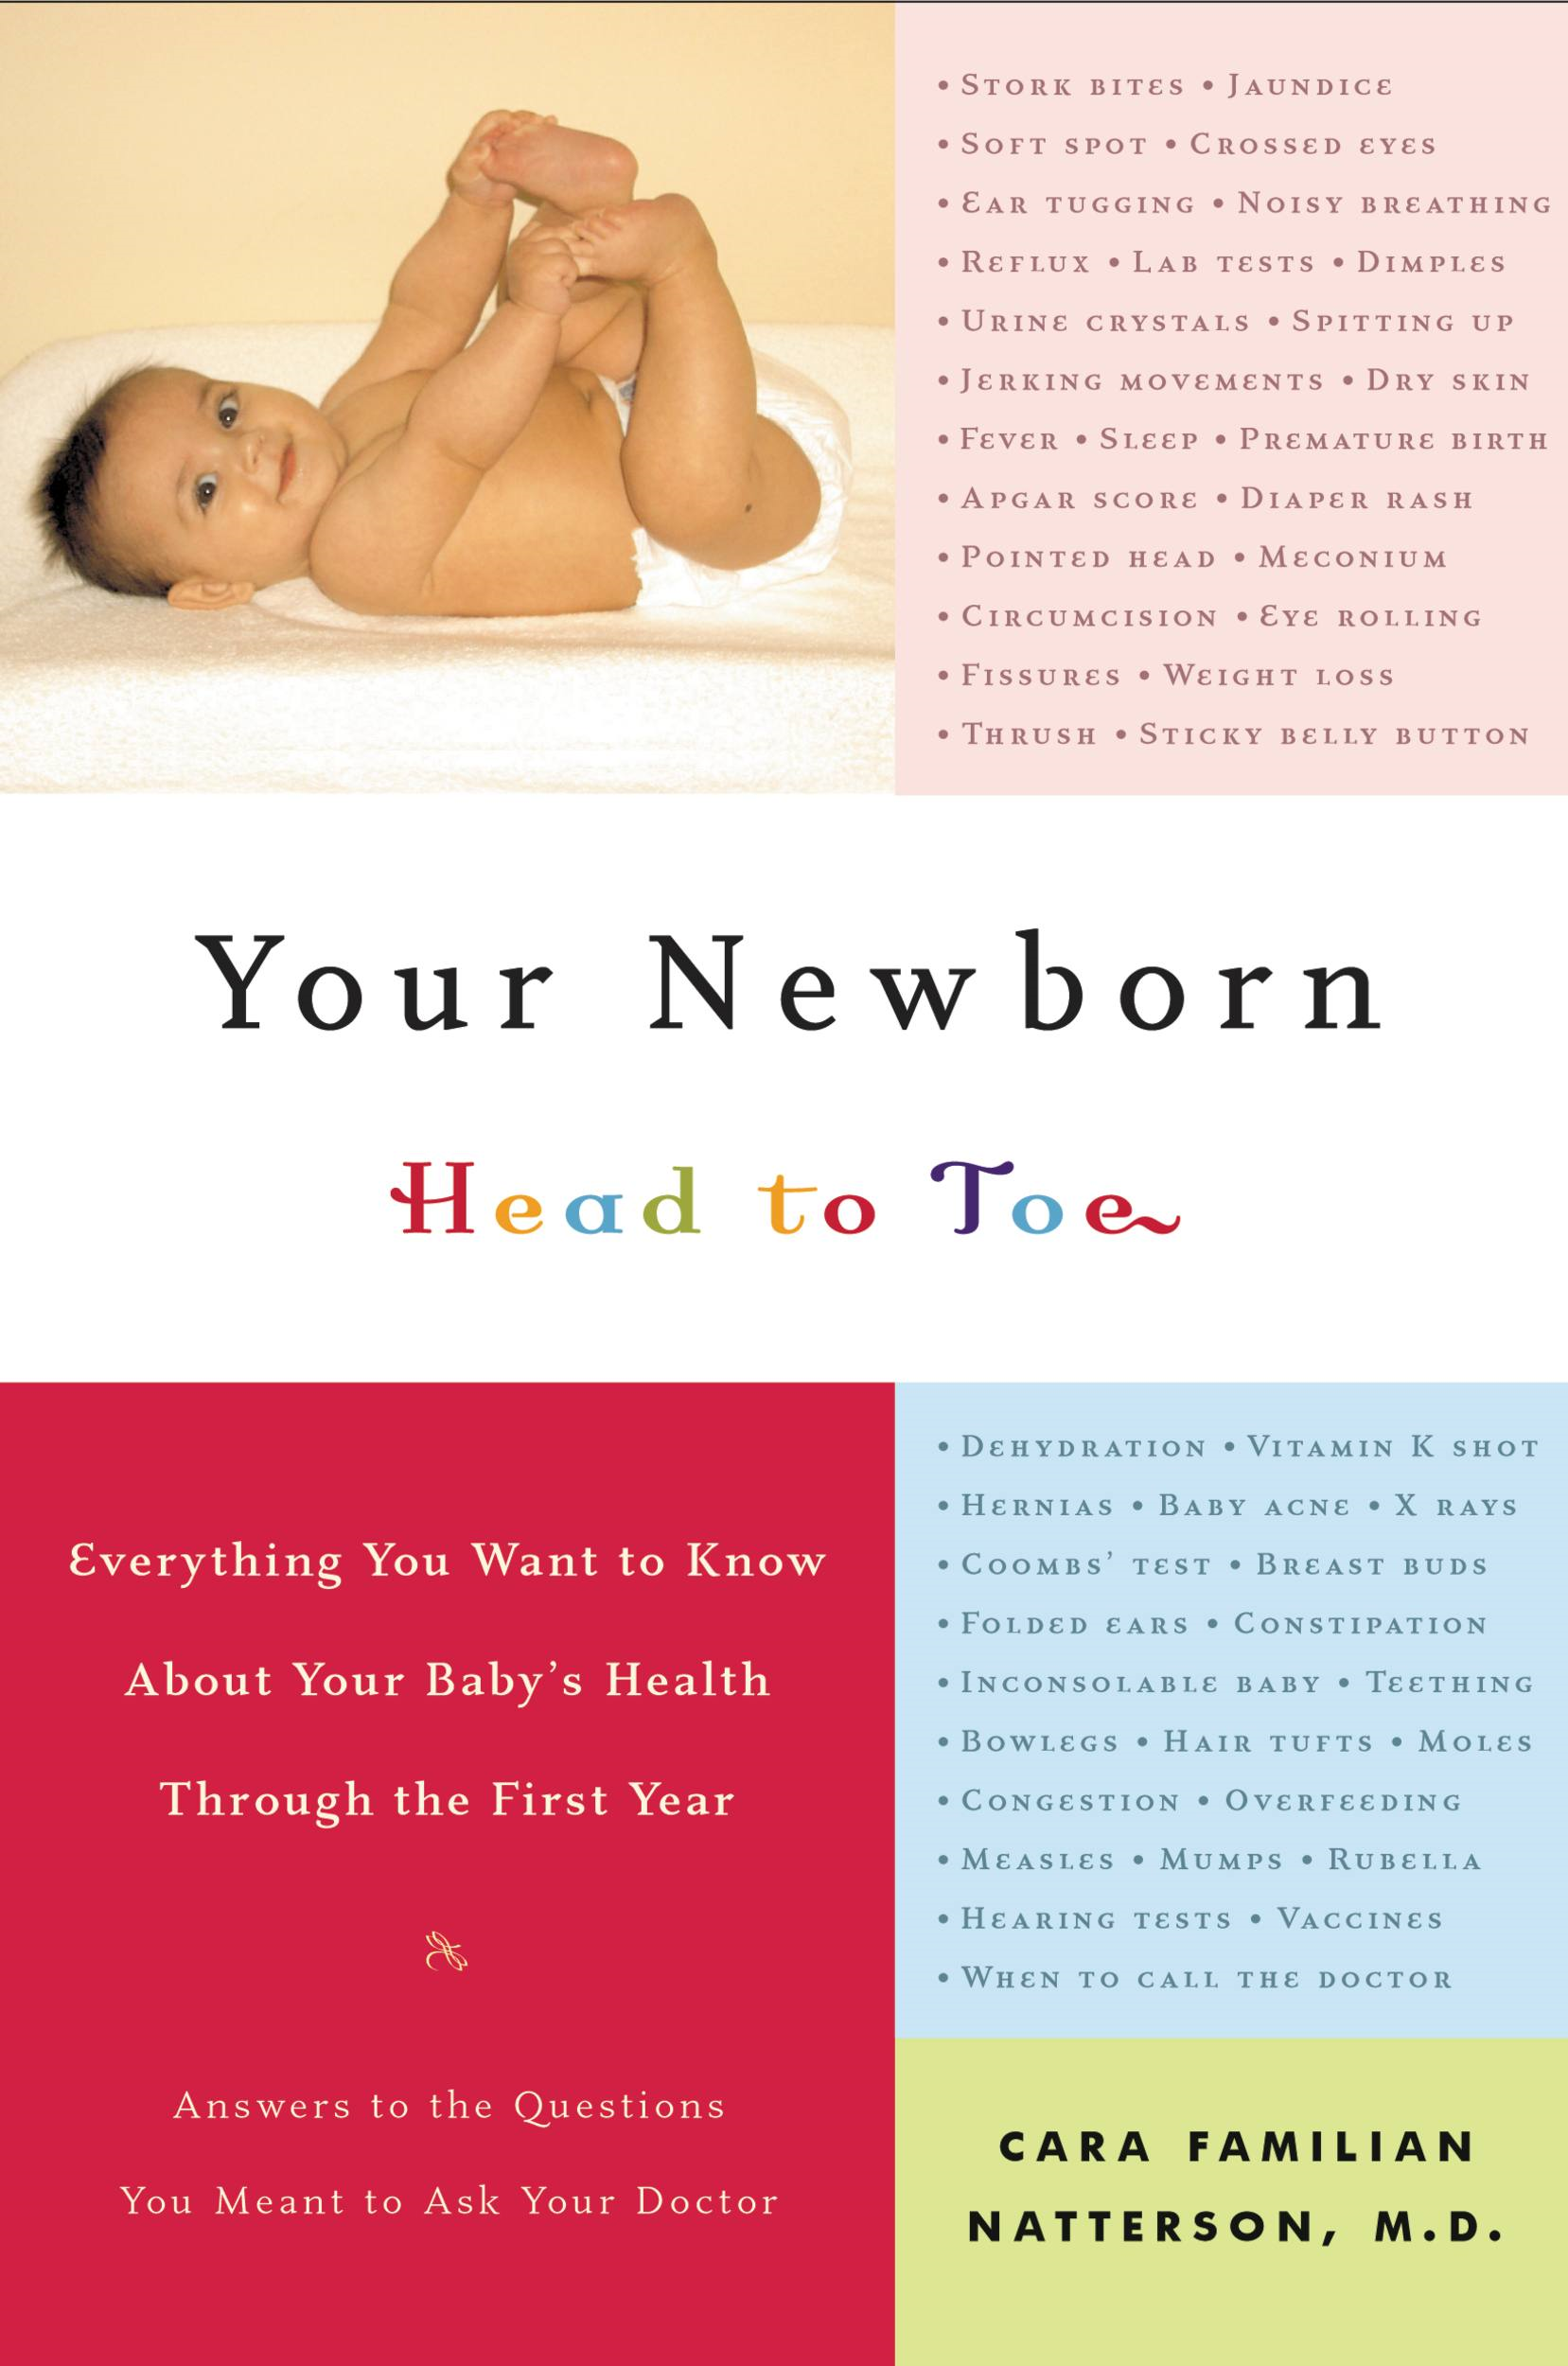 Your Newborn By: Cara Familian Natterson